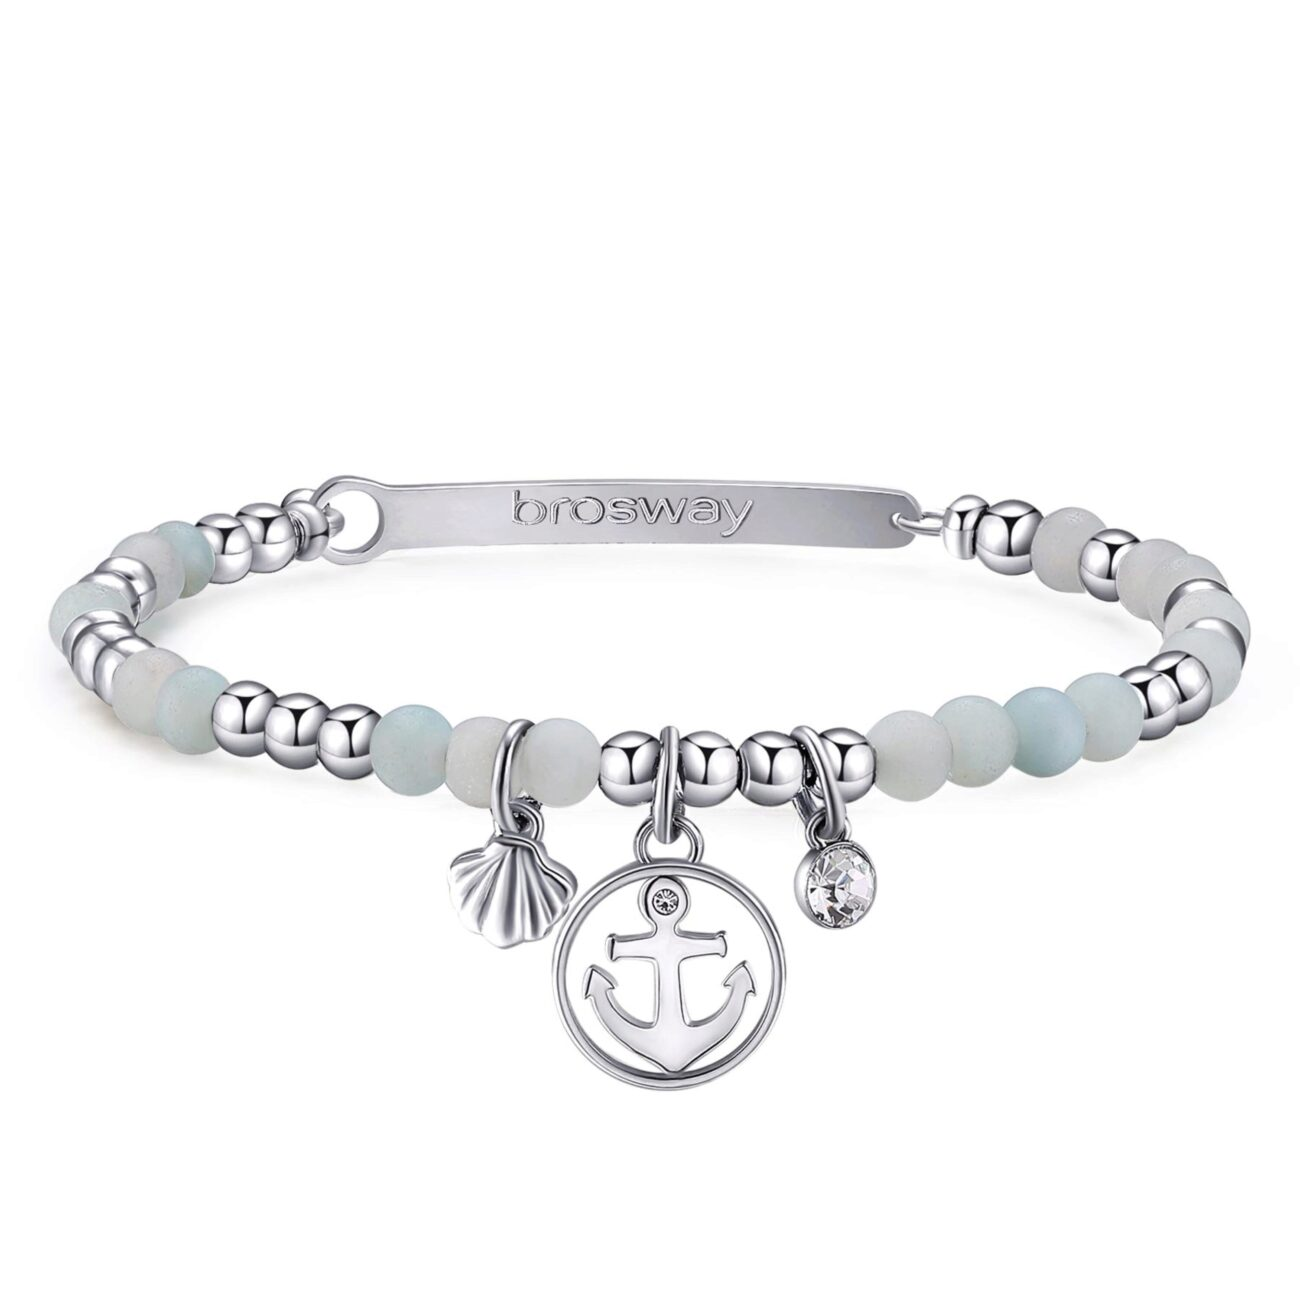 ANCHOR: SECURITY, HOPE, EQUILIBRIUMENGRAVED: Find infinity over the horizon (front)An anchor symbolises the safety of Terra firma, holding firm to something that, by its very nature, is never at rest. It represents the hope of always finding a safe port in a storm.316L stainless steel bracelet, amazonite with anchor and seashell pendants and crystal.